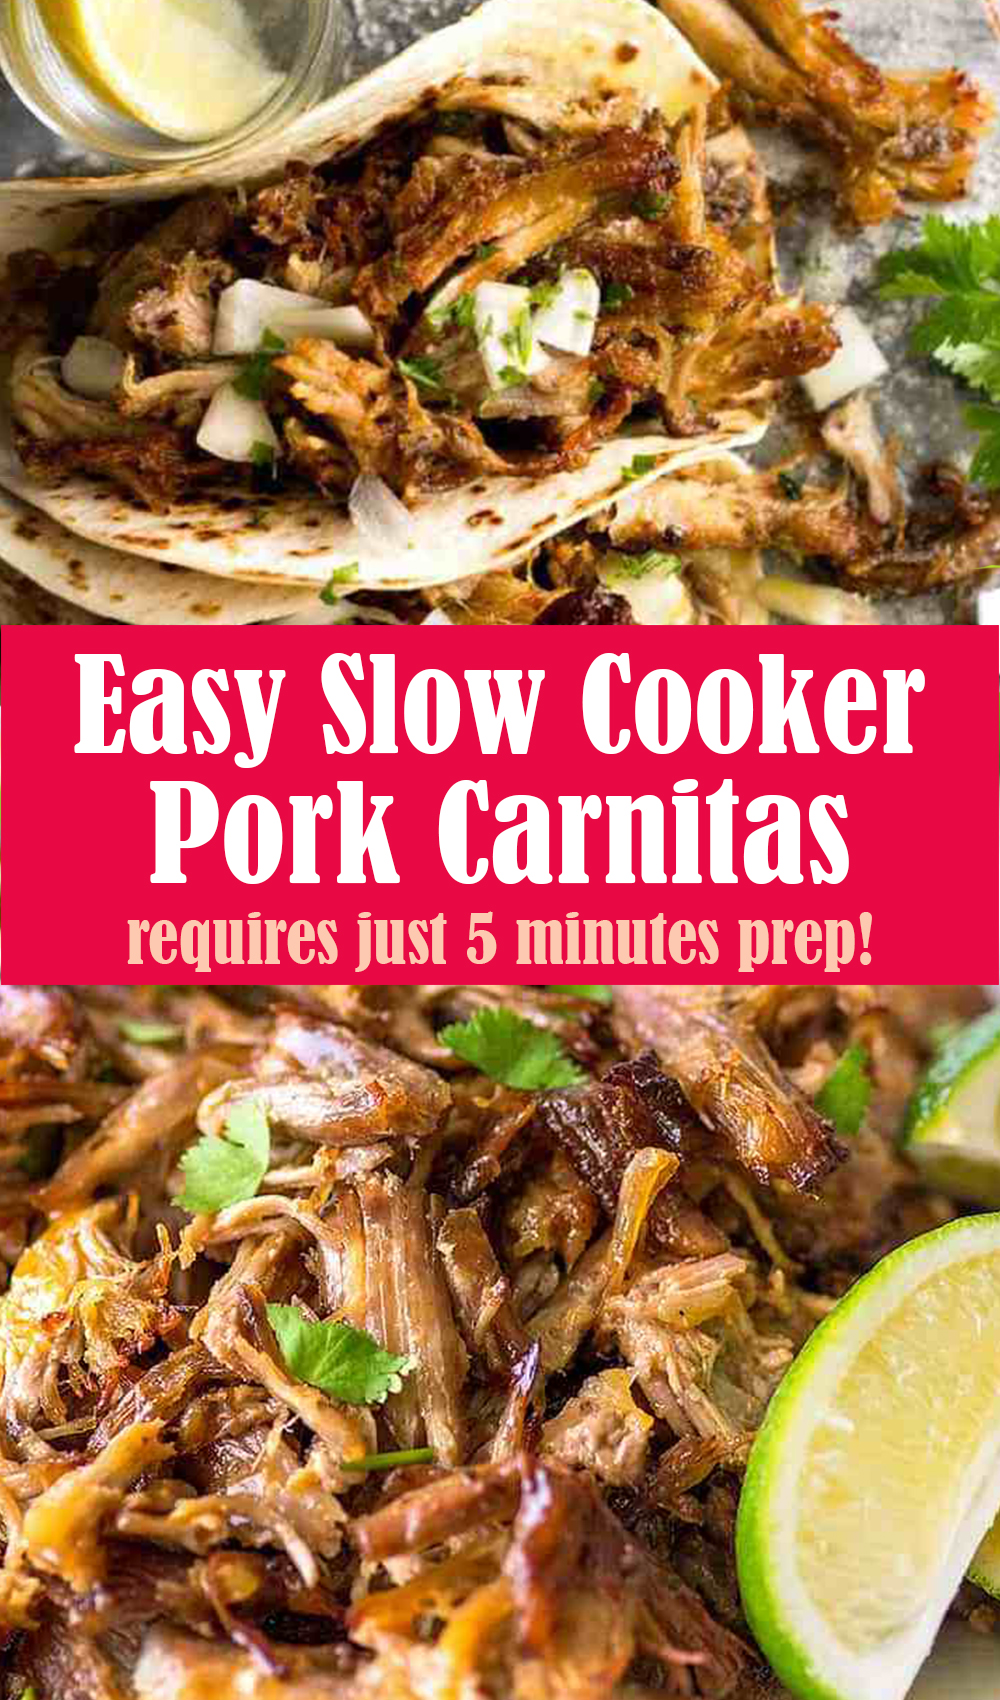 Easy Carnitas Recipe (Mexican Slow Cooker Pulled Pork)